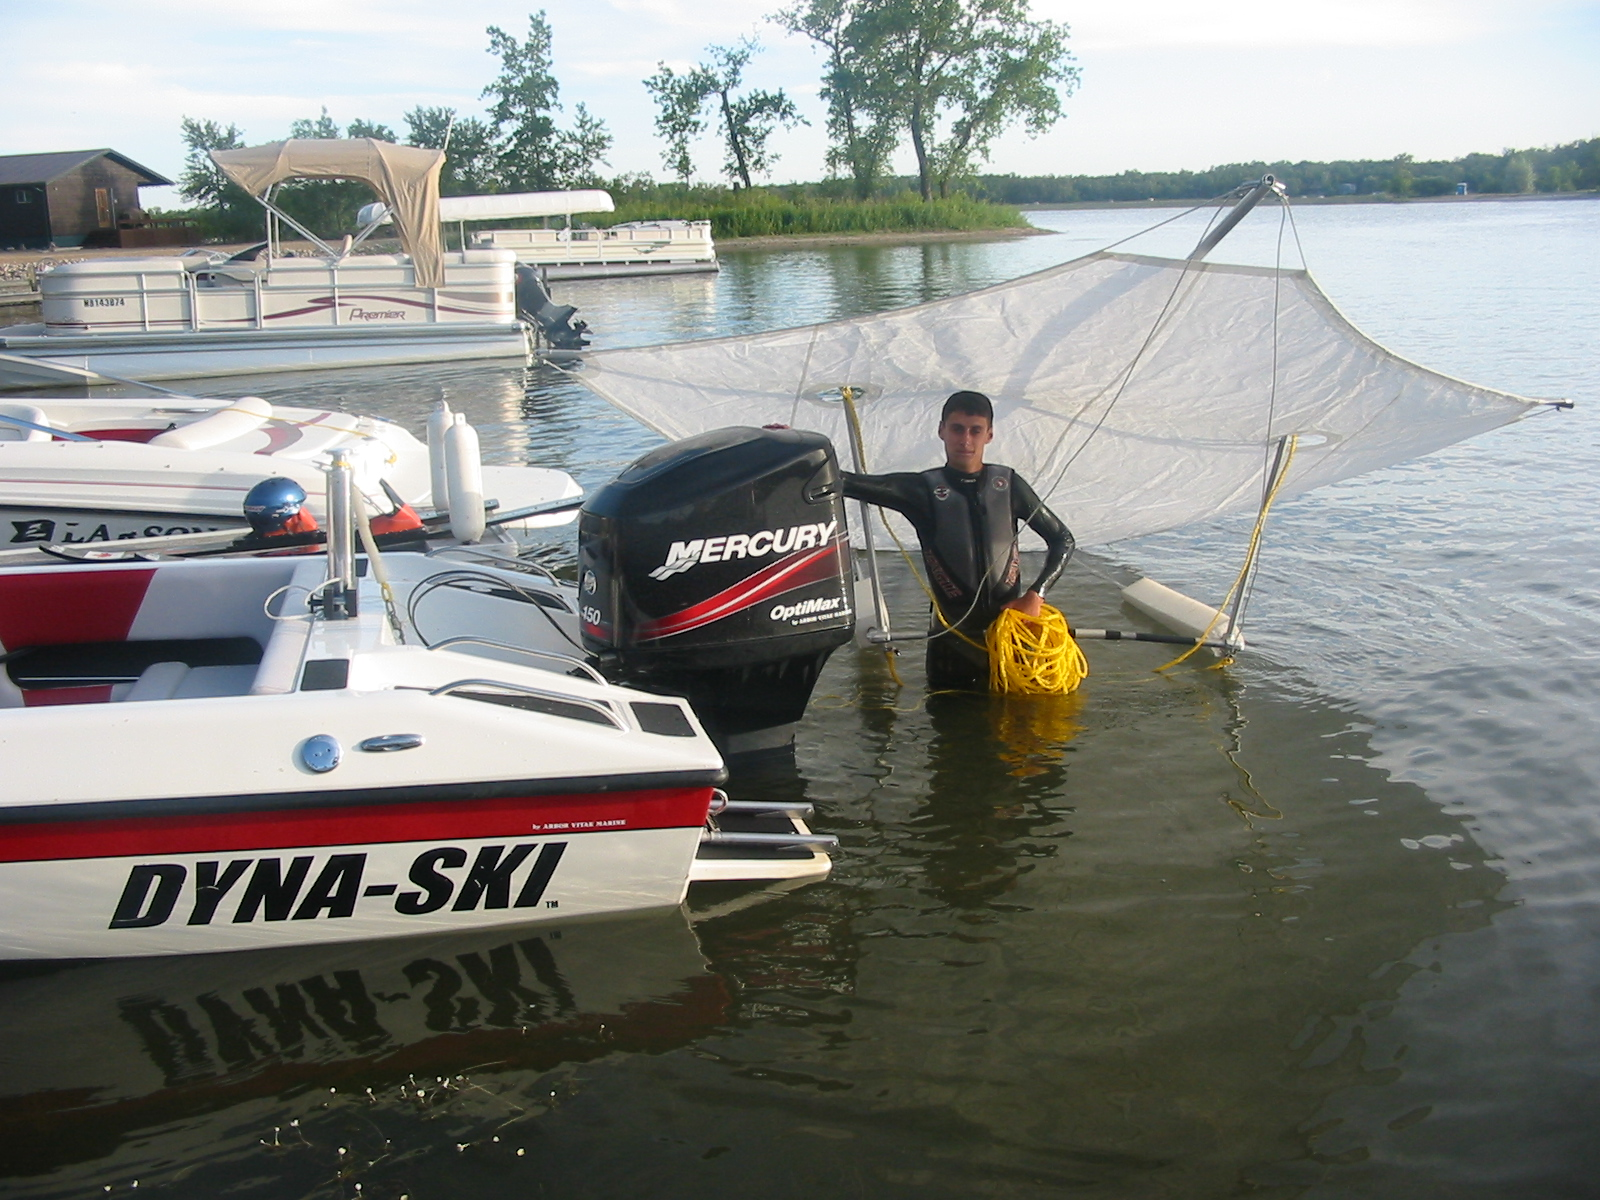 Dyna-Ski Boats: Cruise Control on an Outboard Finally